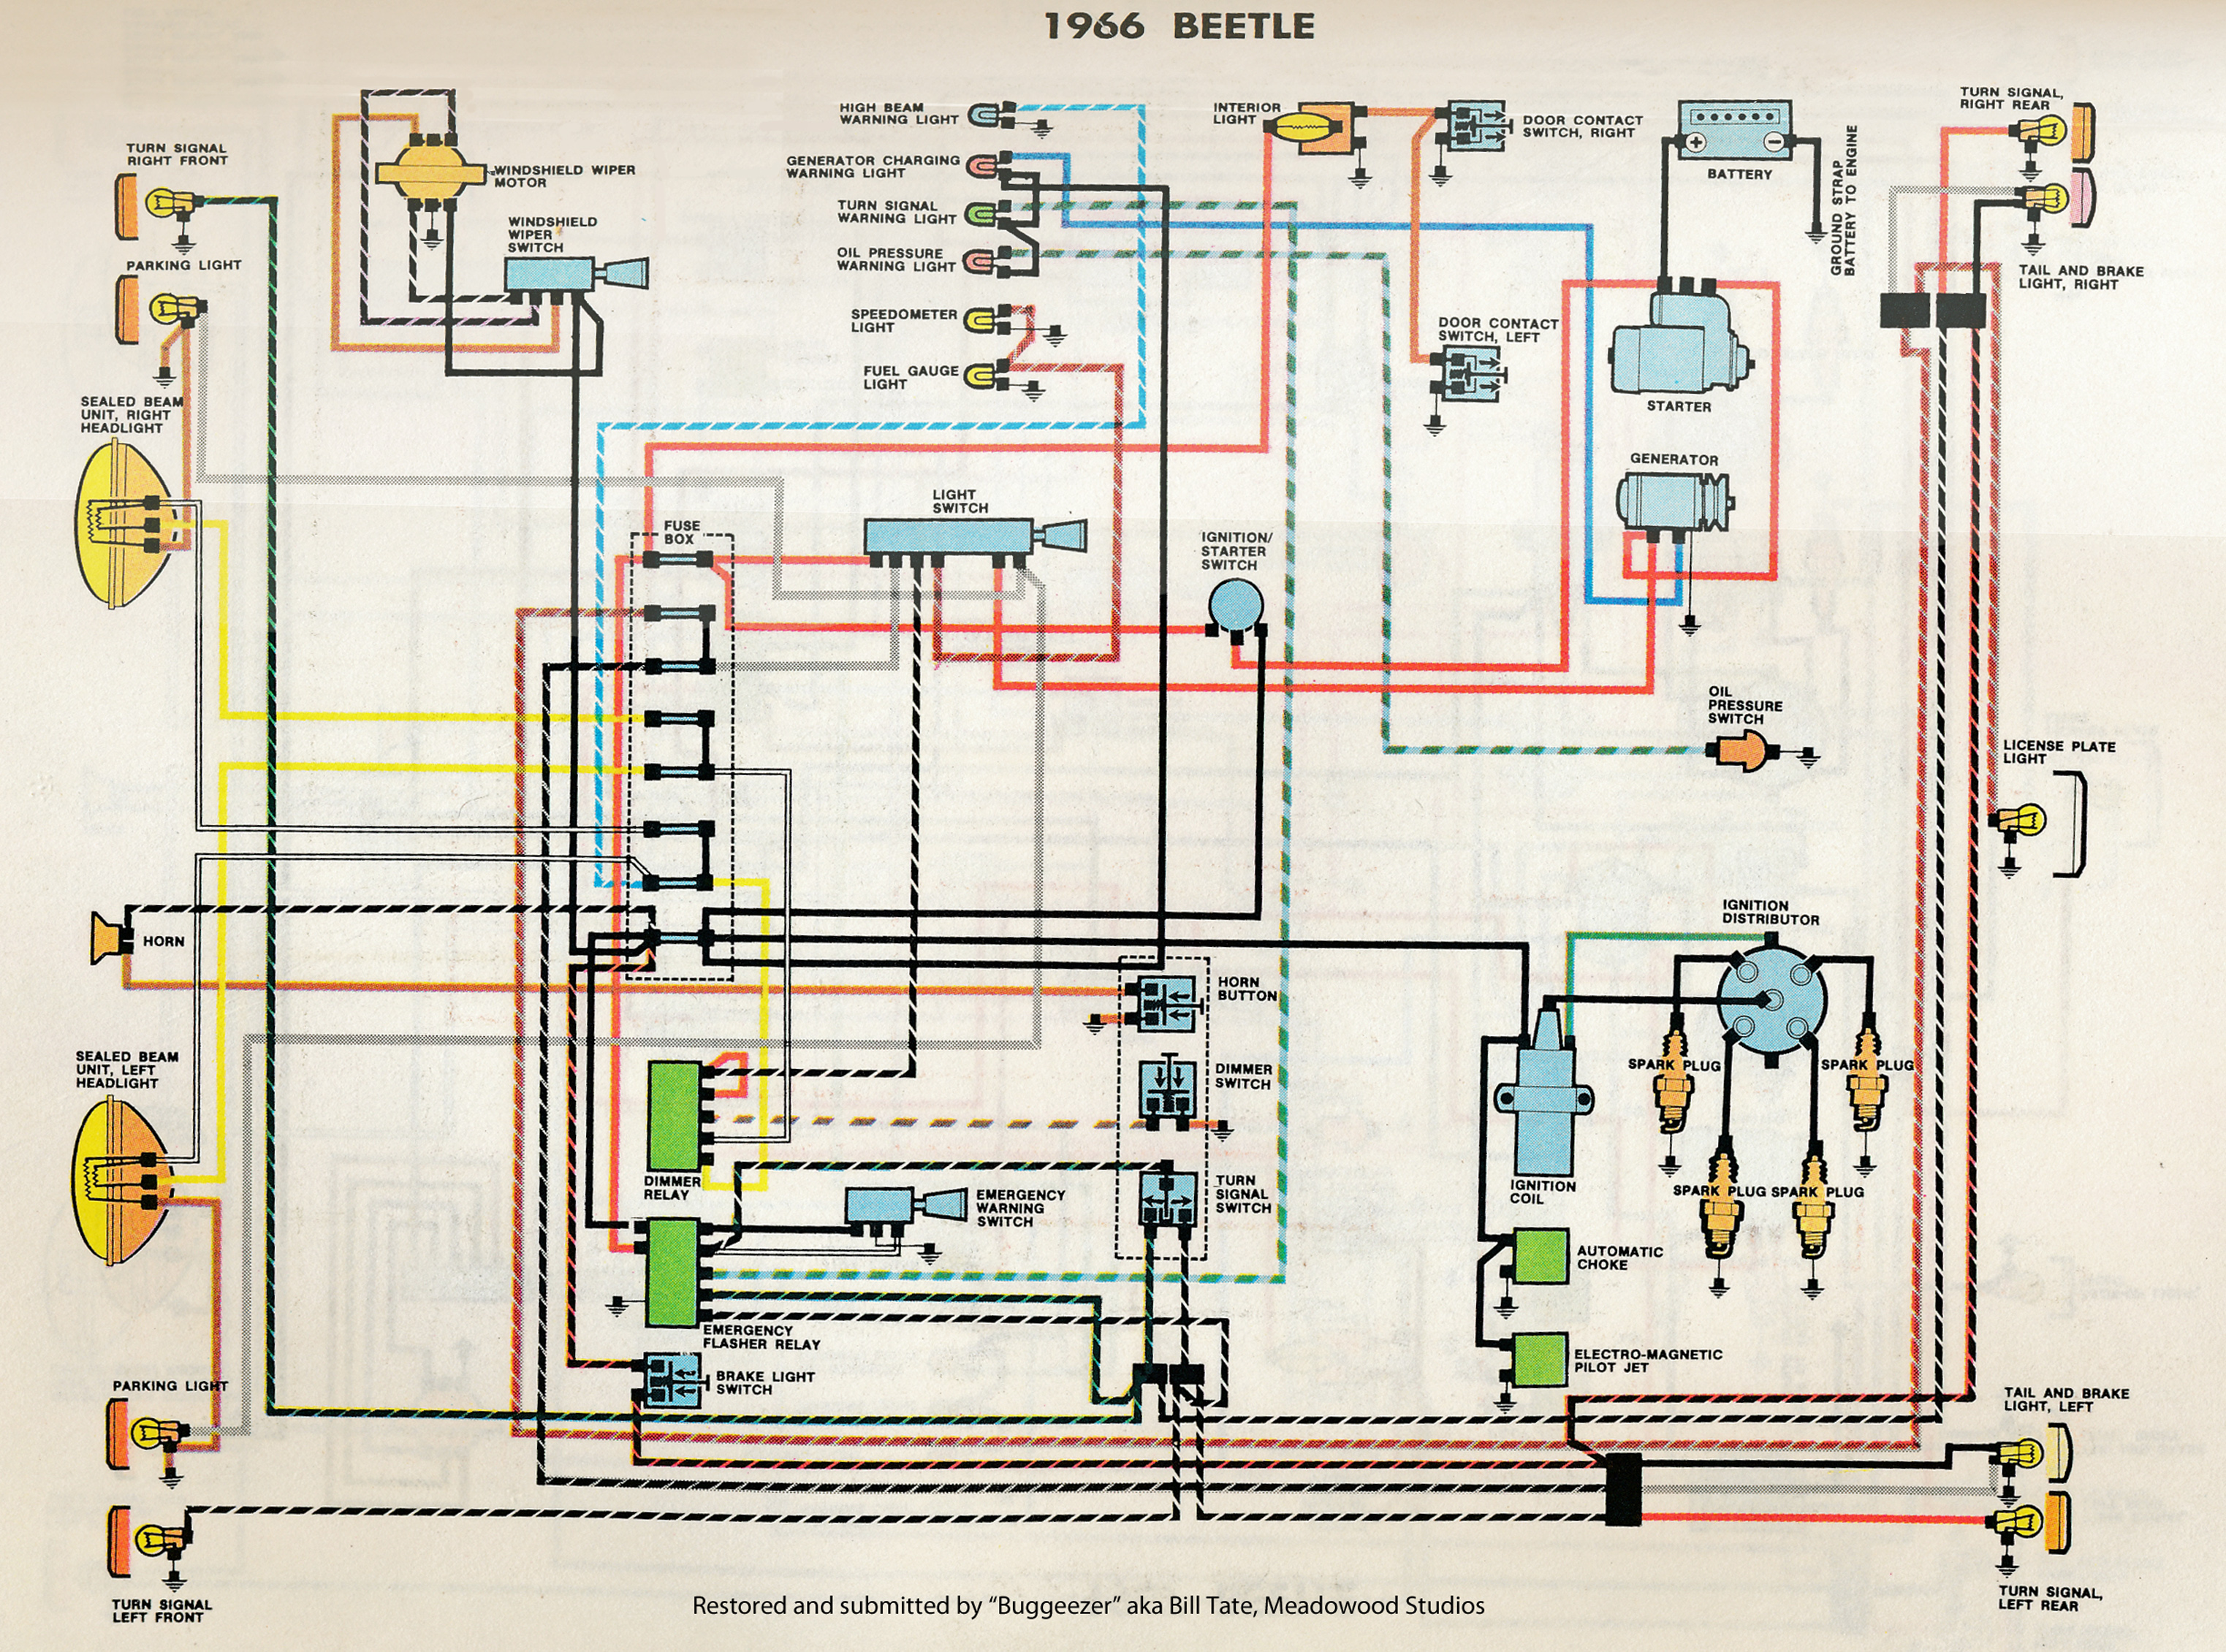 1975 Vw Beetle Wiring Diagram Just Another Blog Volkswagen Thesamba Com Type 1 Diagrams Rh Bug